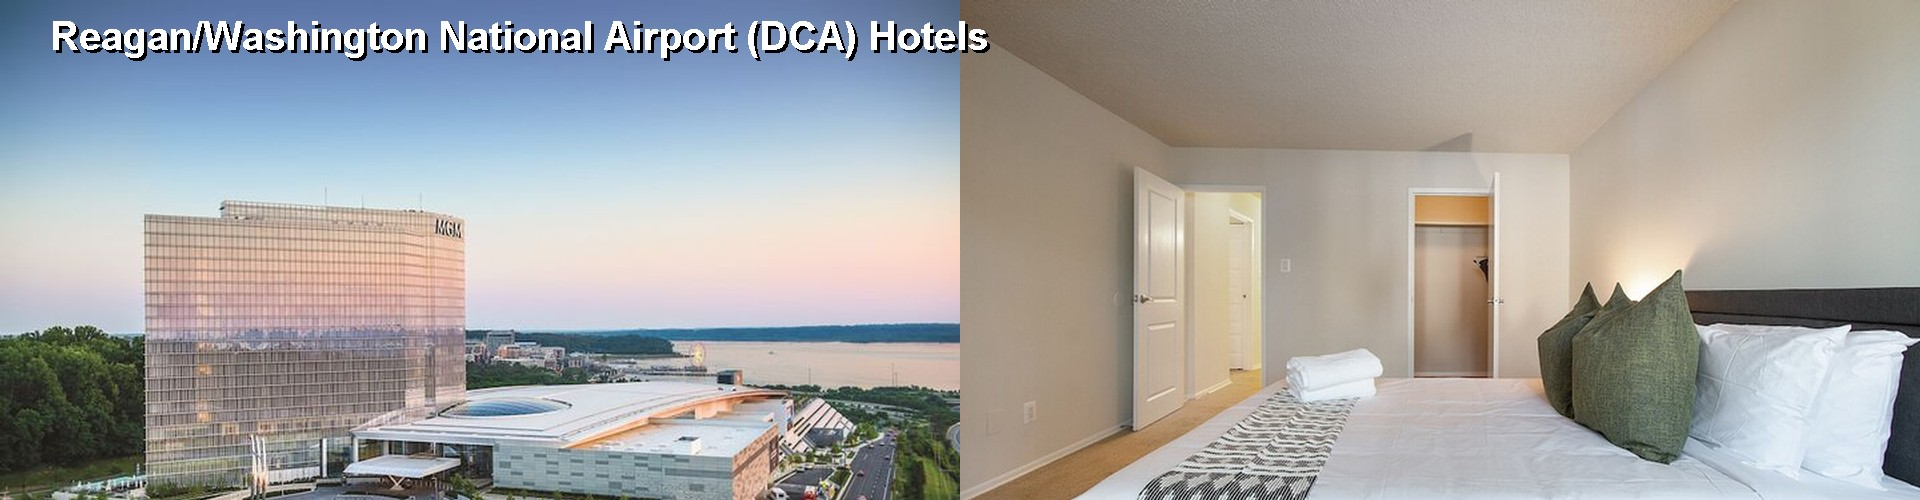 61 Hotels Near Reagan Washington National Airport Dca Dc